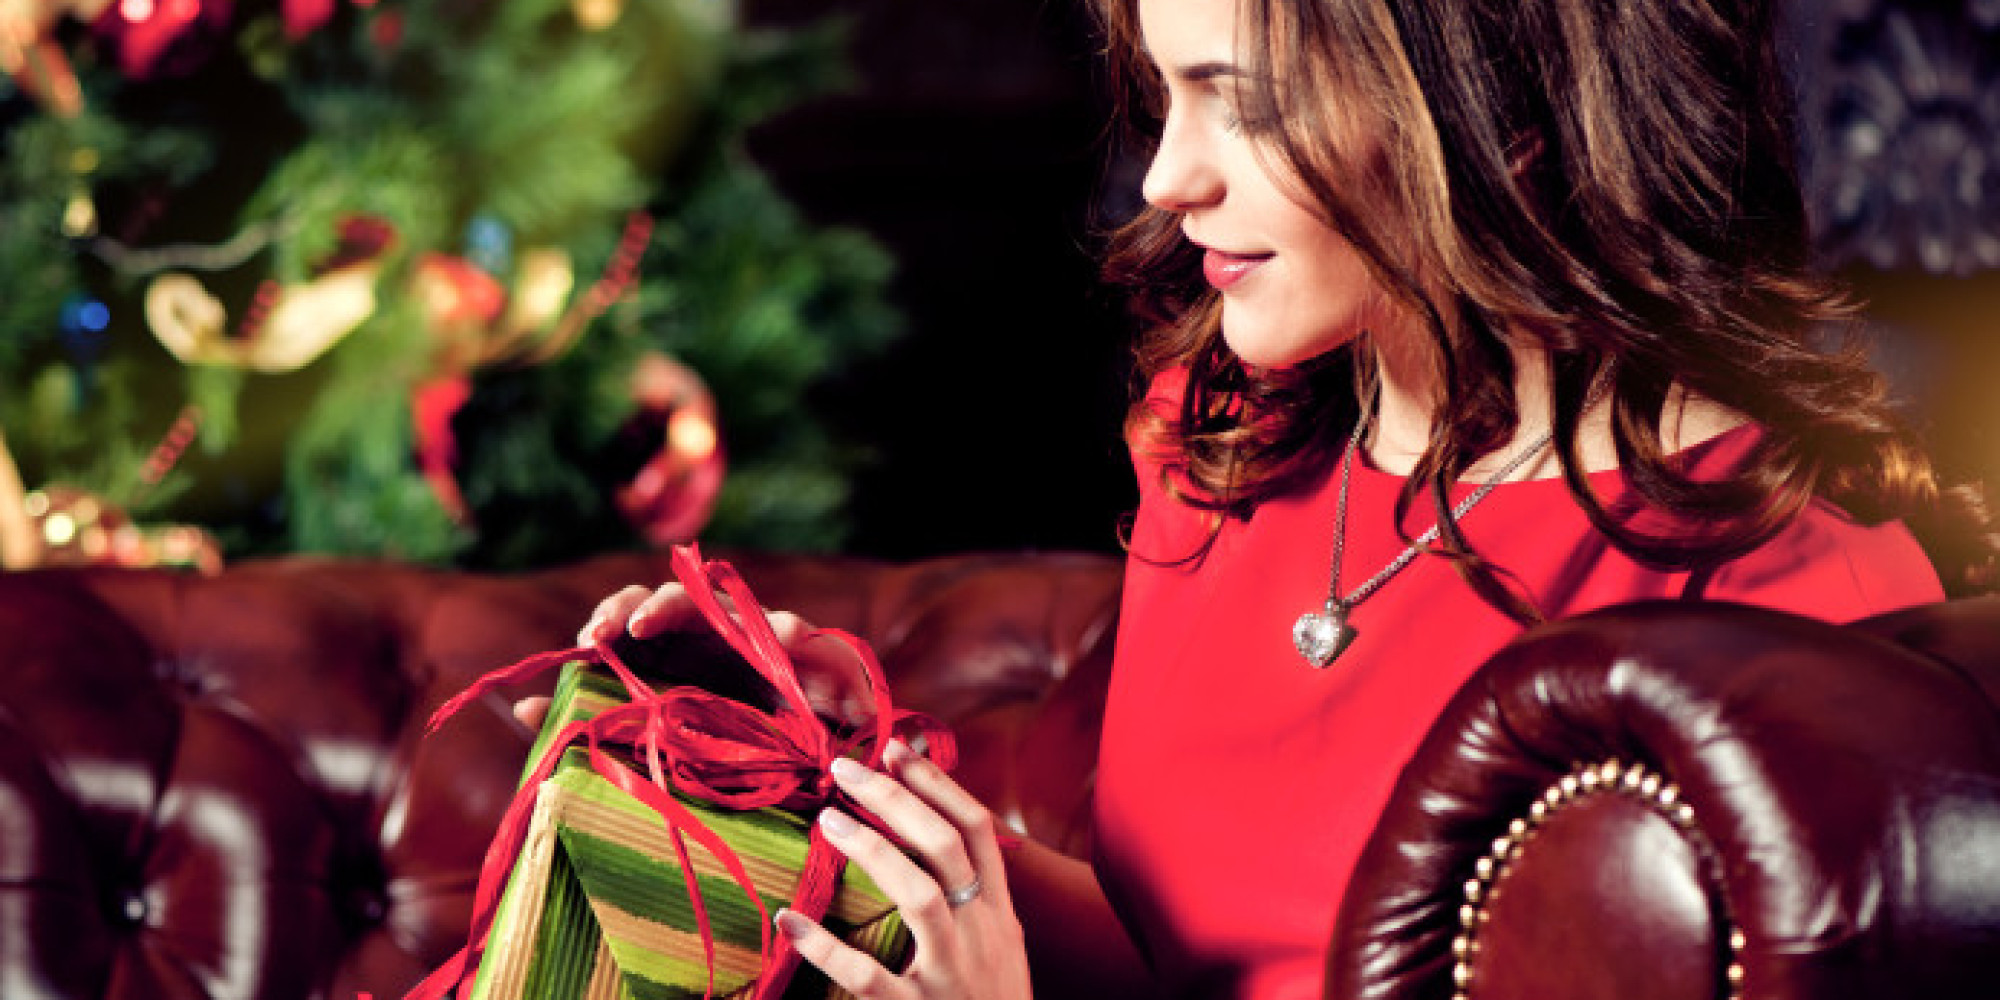 Top Women's Gifts For Christmas 2013 (PICTURES)